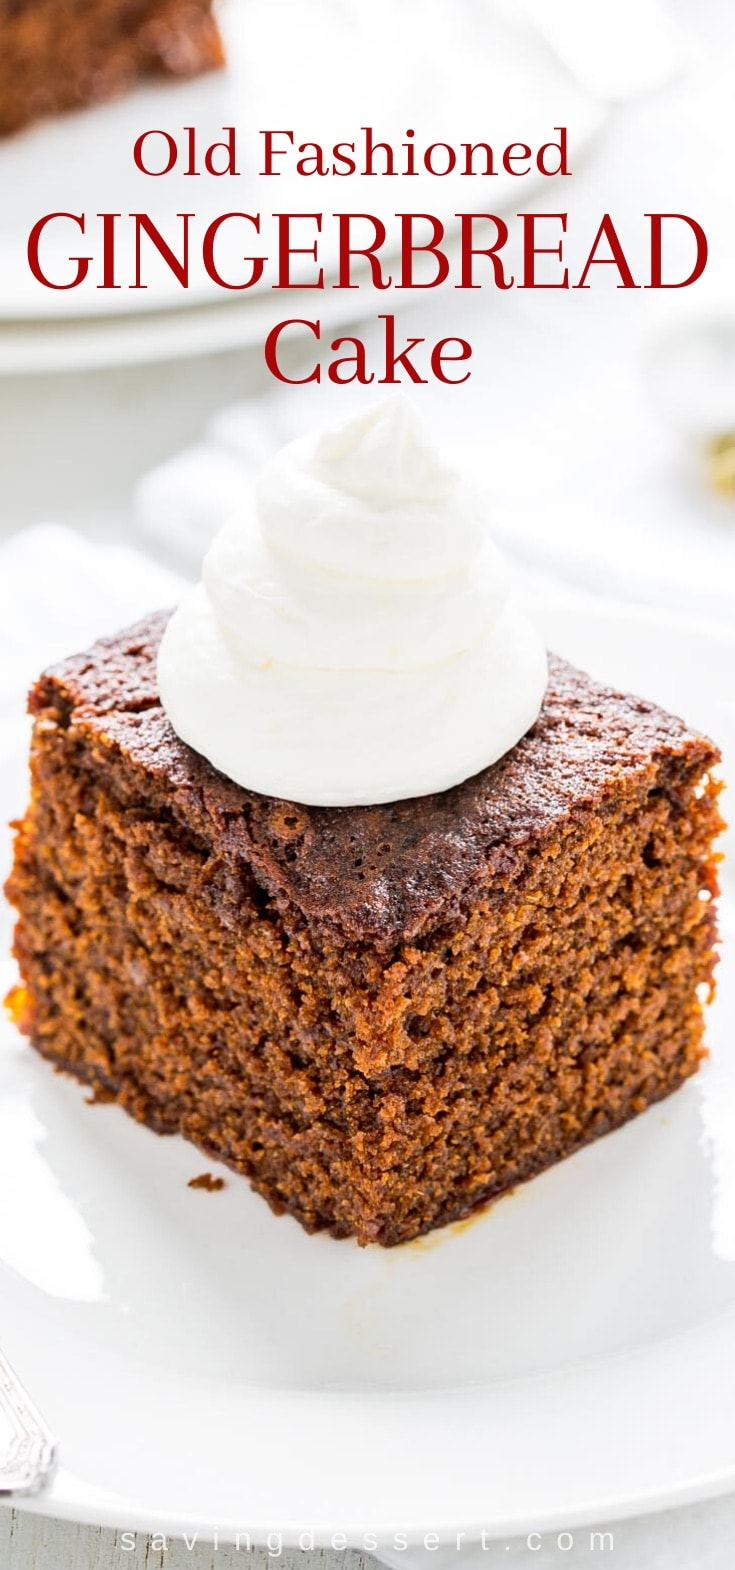 A slice of old fashioned gingerbread cake with lemon whipped cream on top